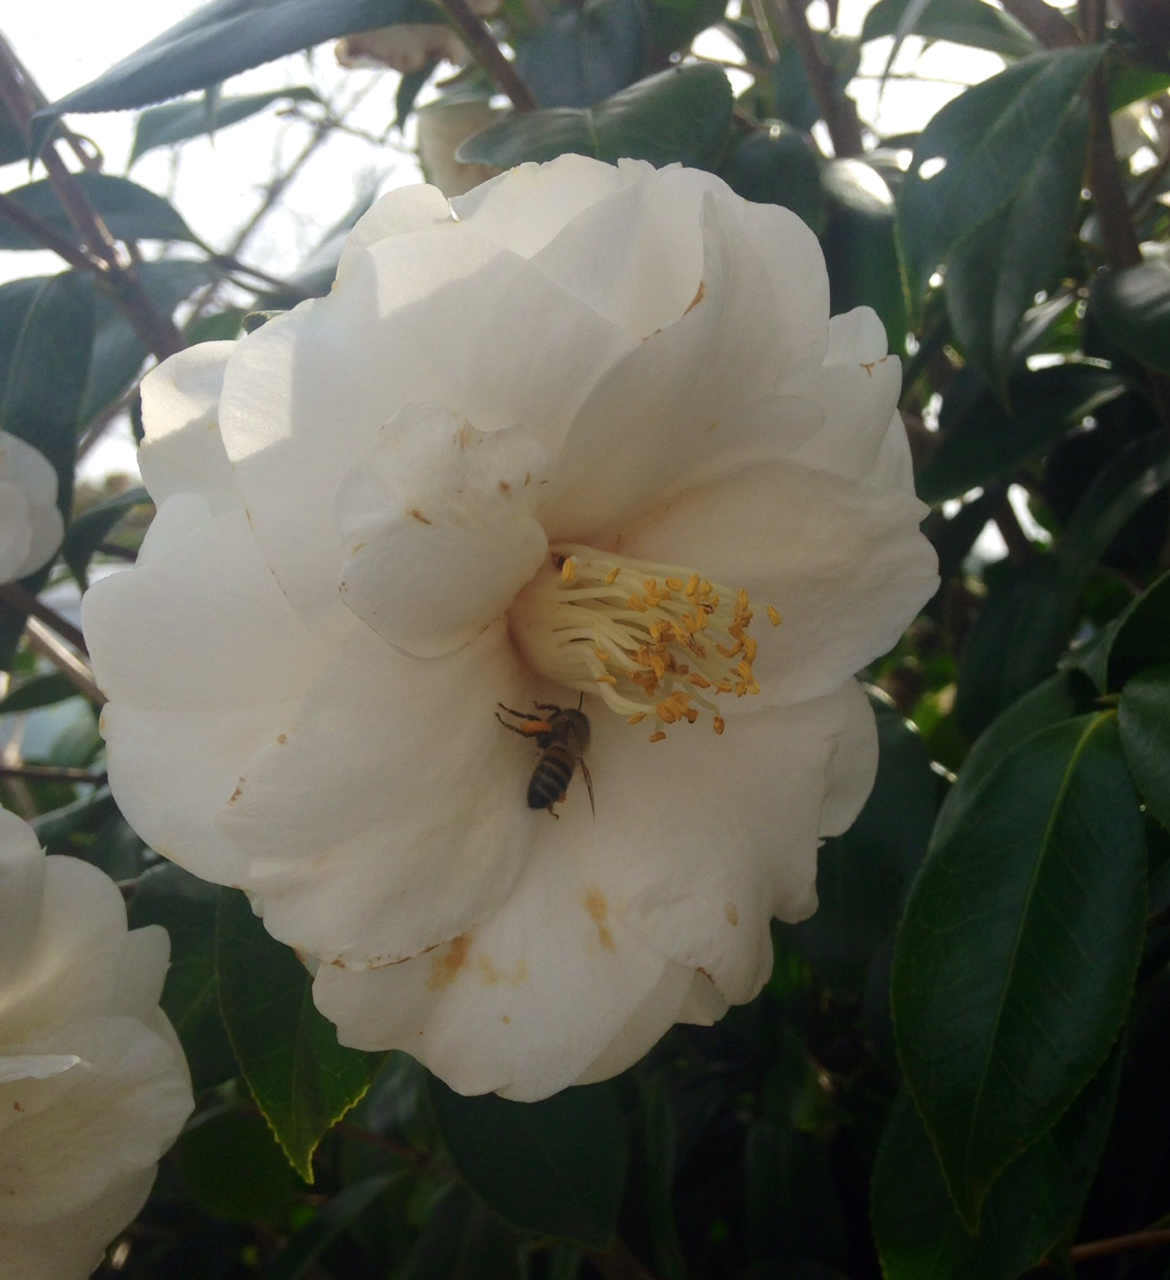 honeybee on Camellia bloom